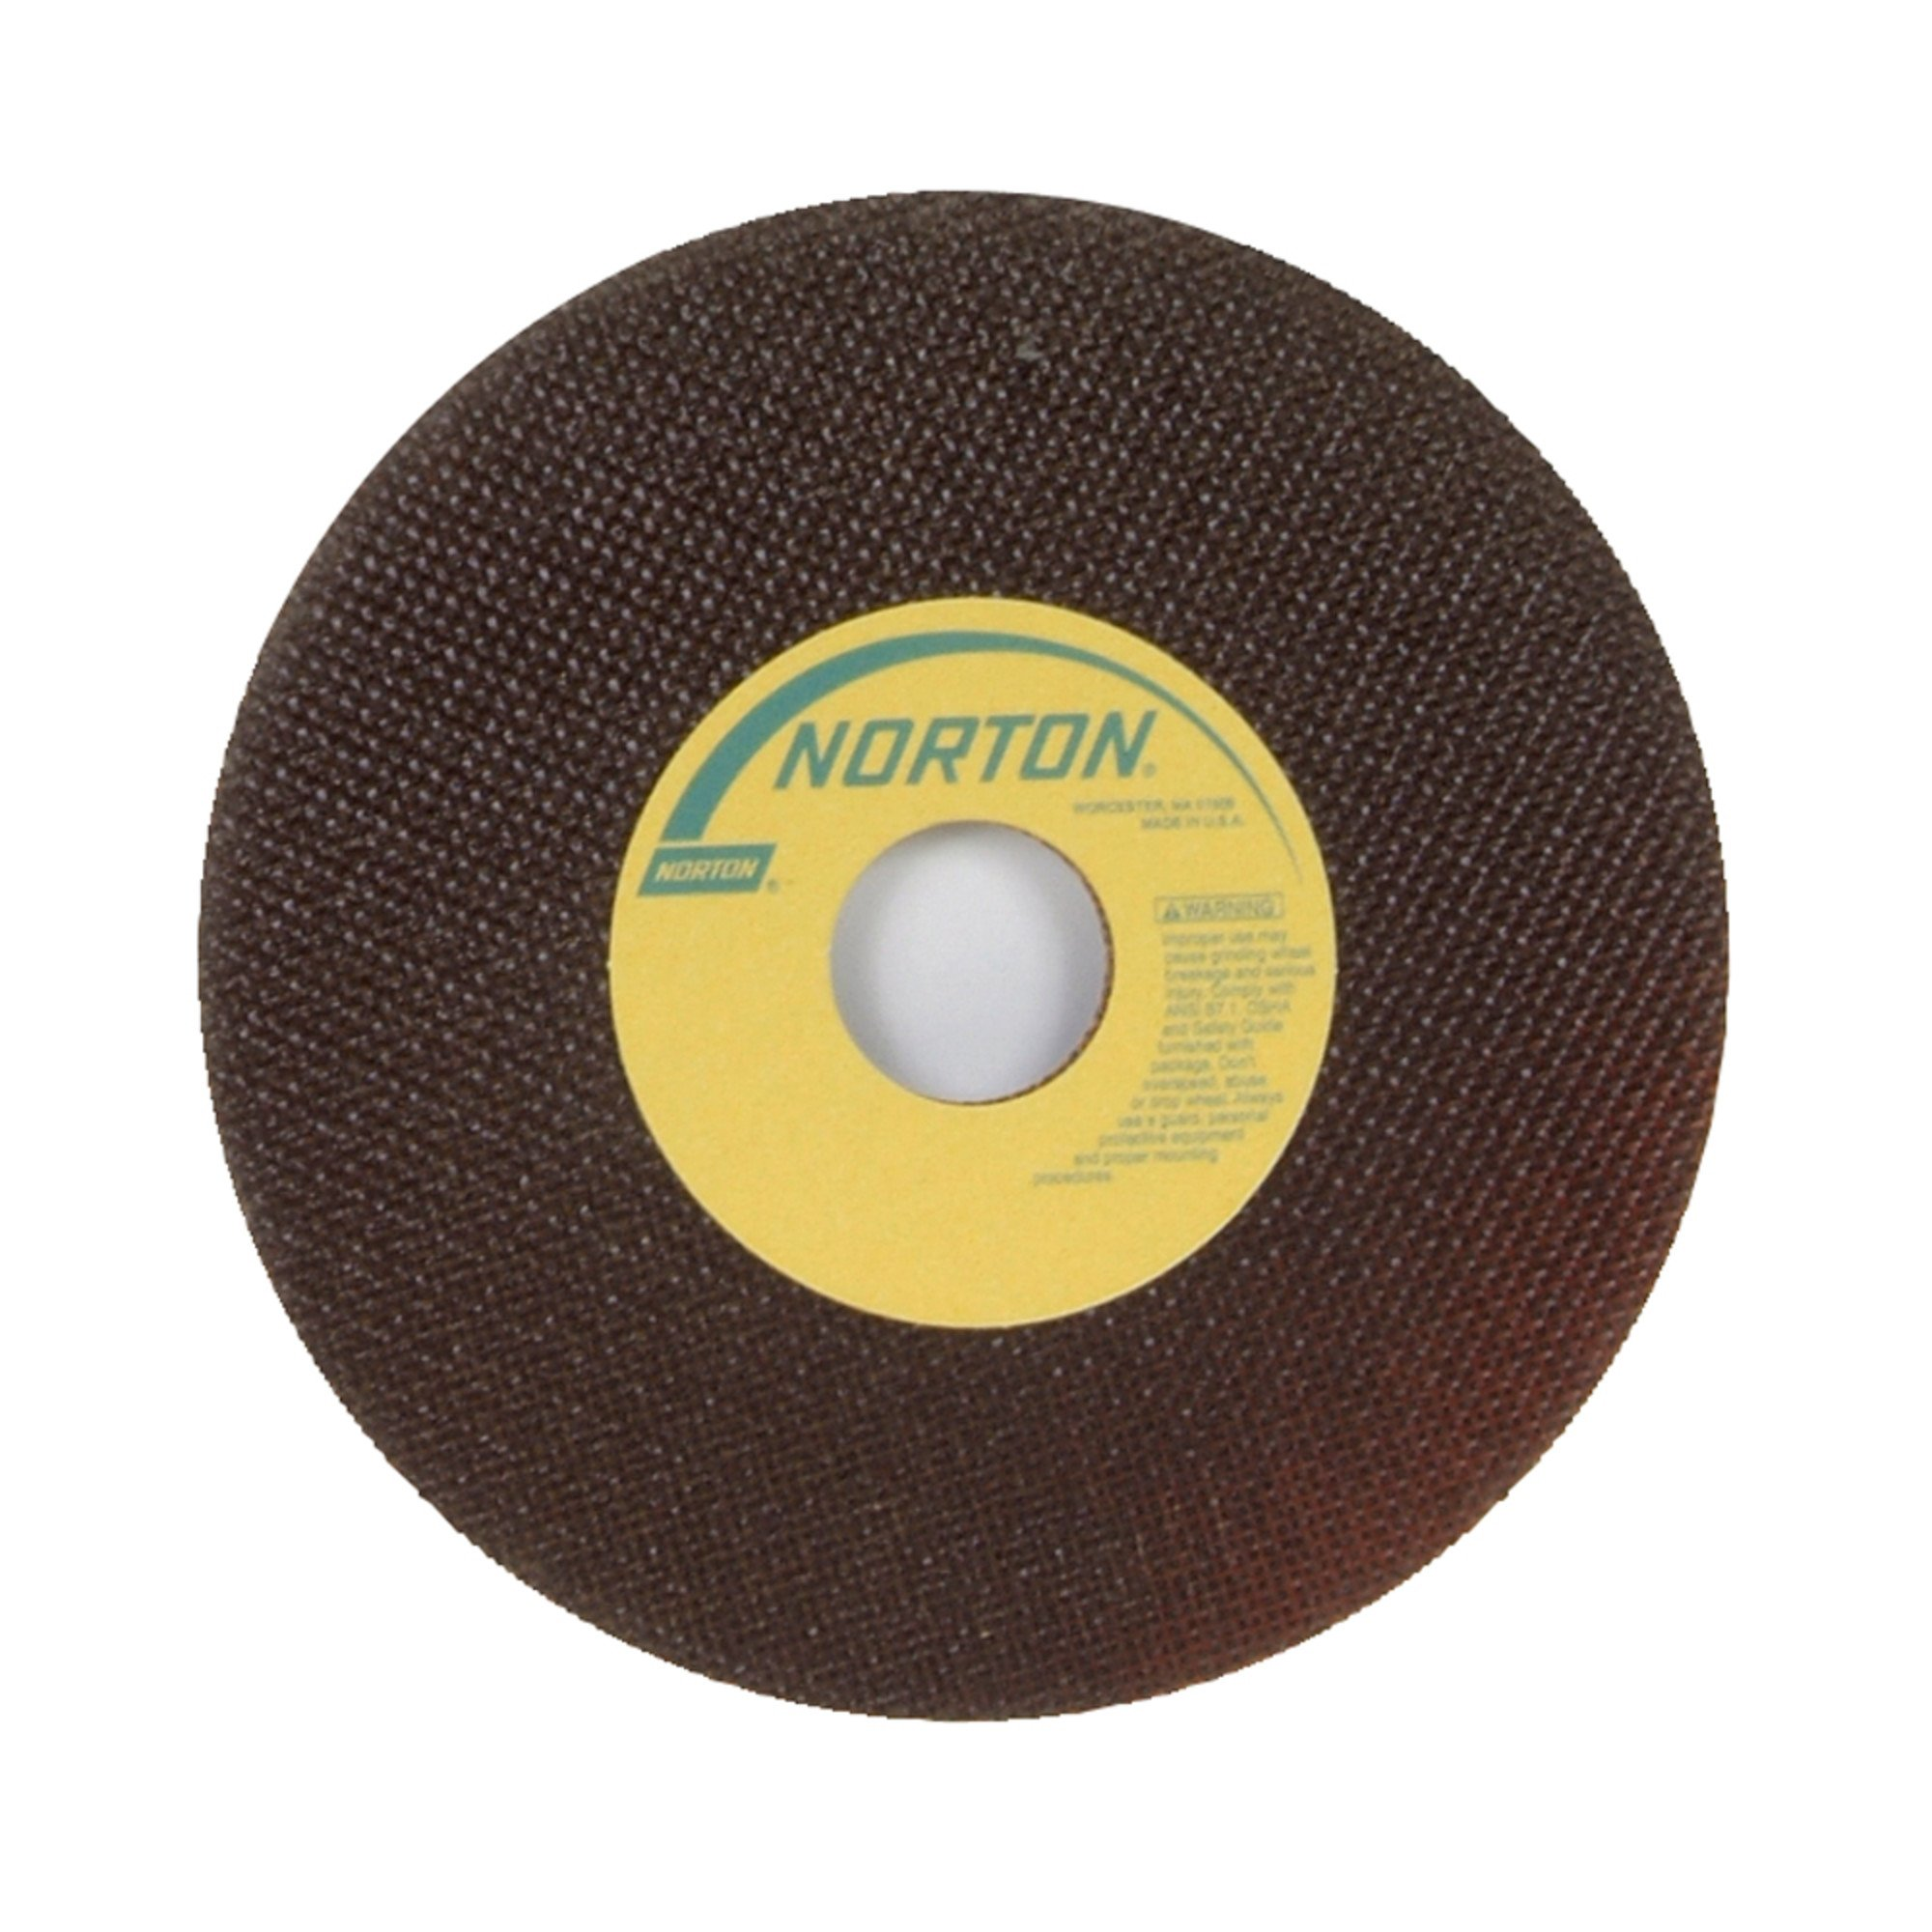 Norton Toolroom Reinforced Abrasive Cut-Off Wheel, Type 01 Flat, Aluminum Oxide, 1-1/4'' Arbor, 7'' Diameter, 0.035'' Thickness, 60 Grit (Pack of 25)